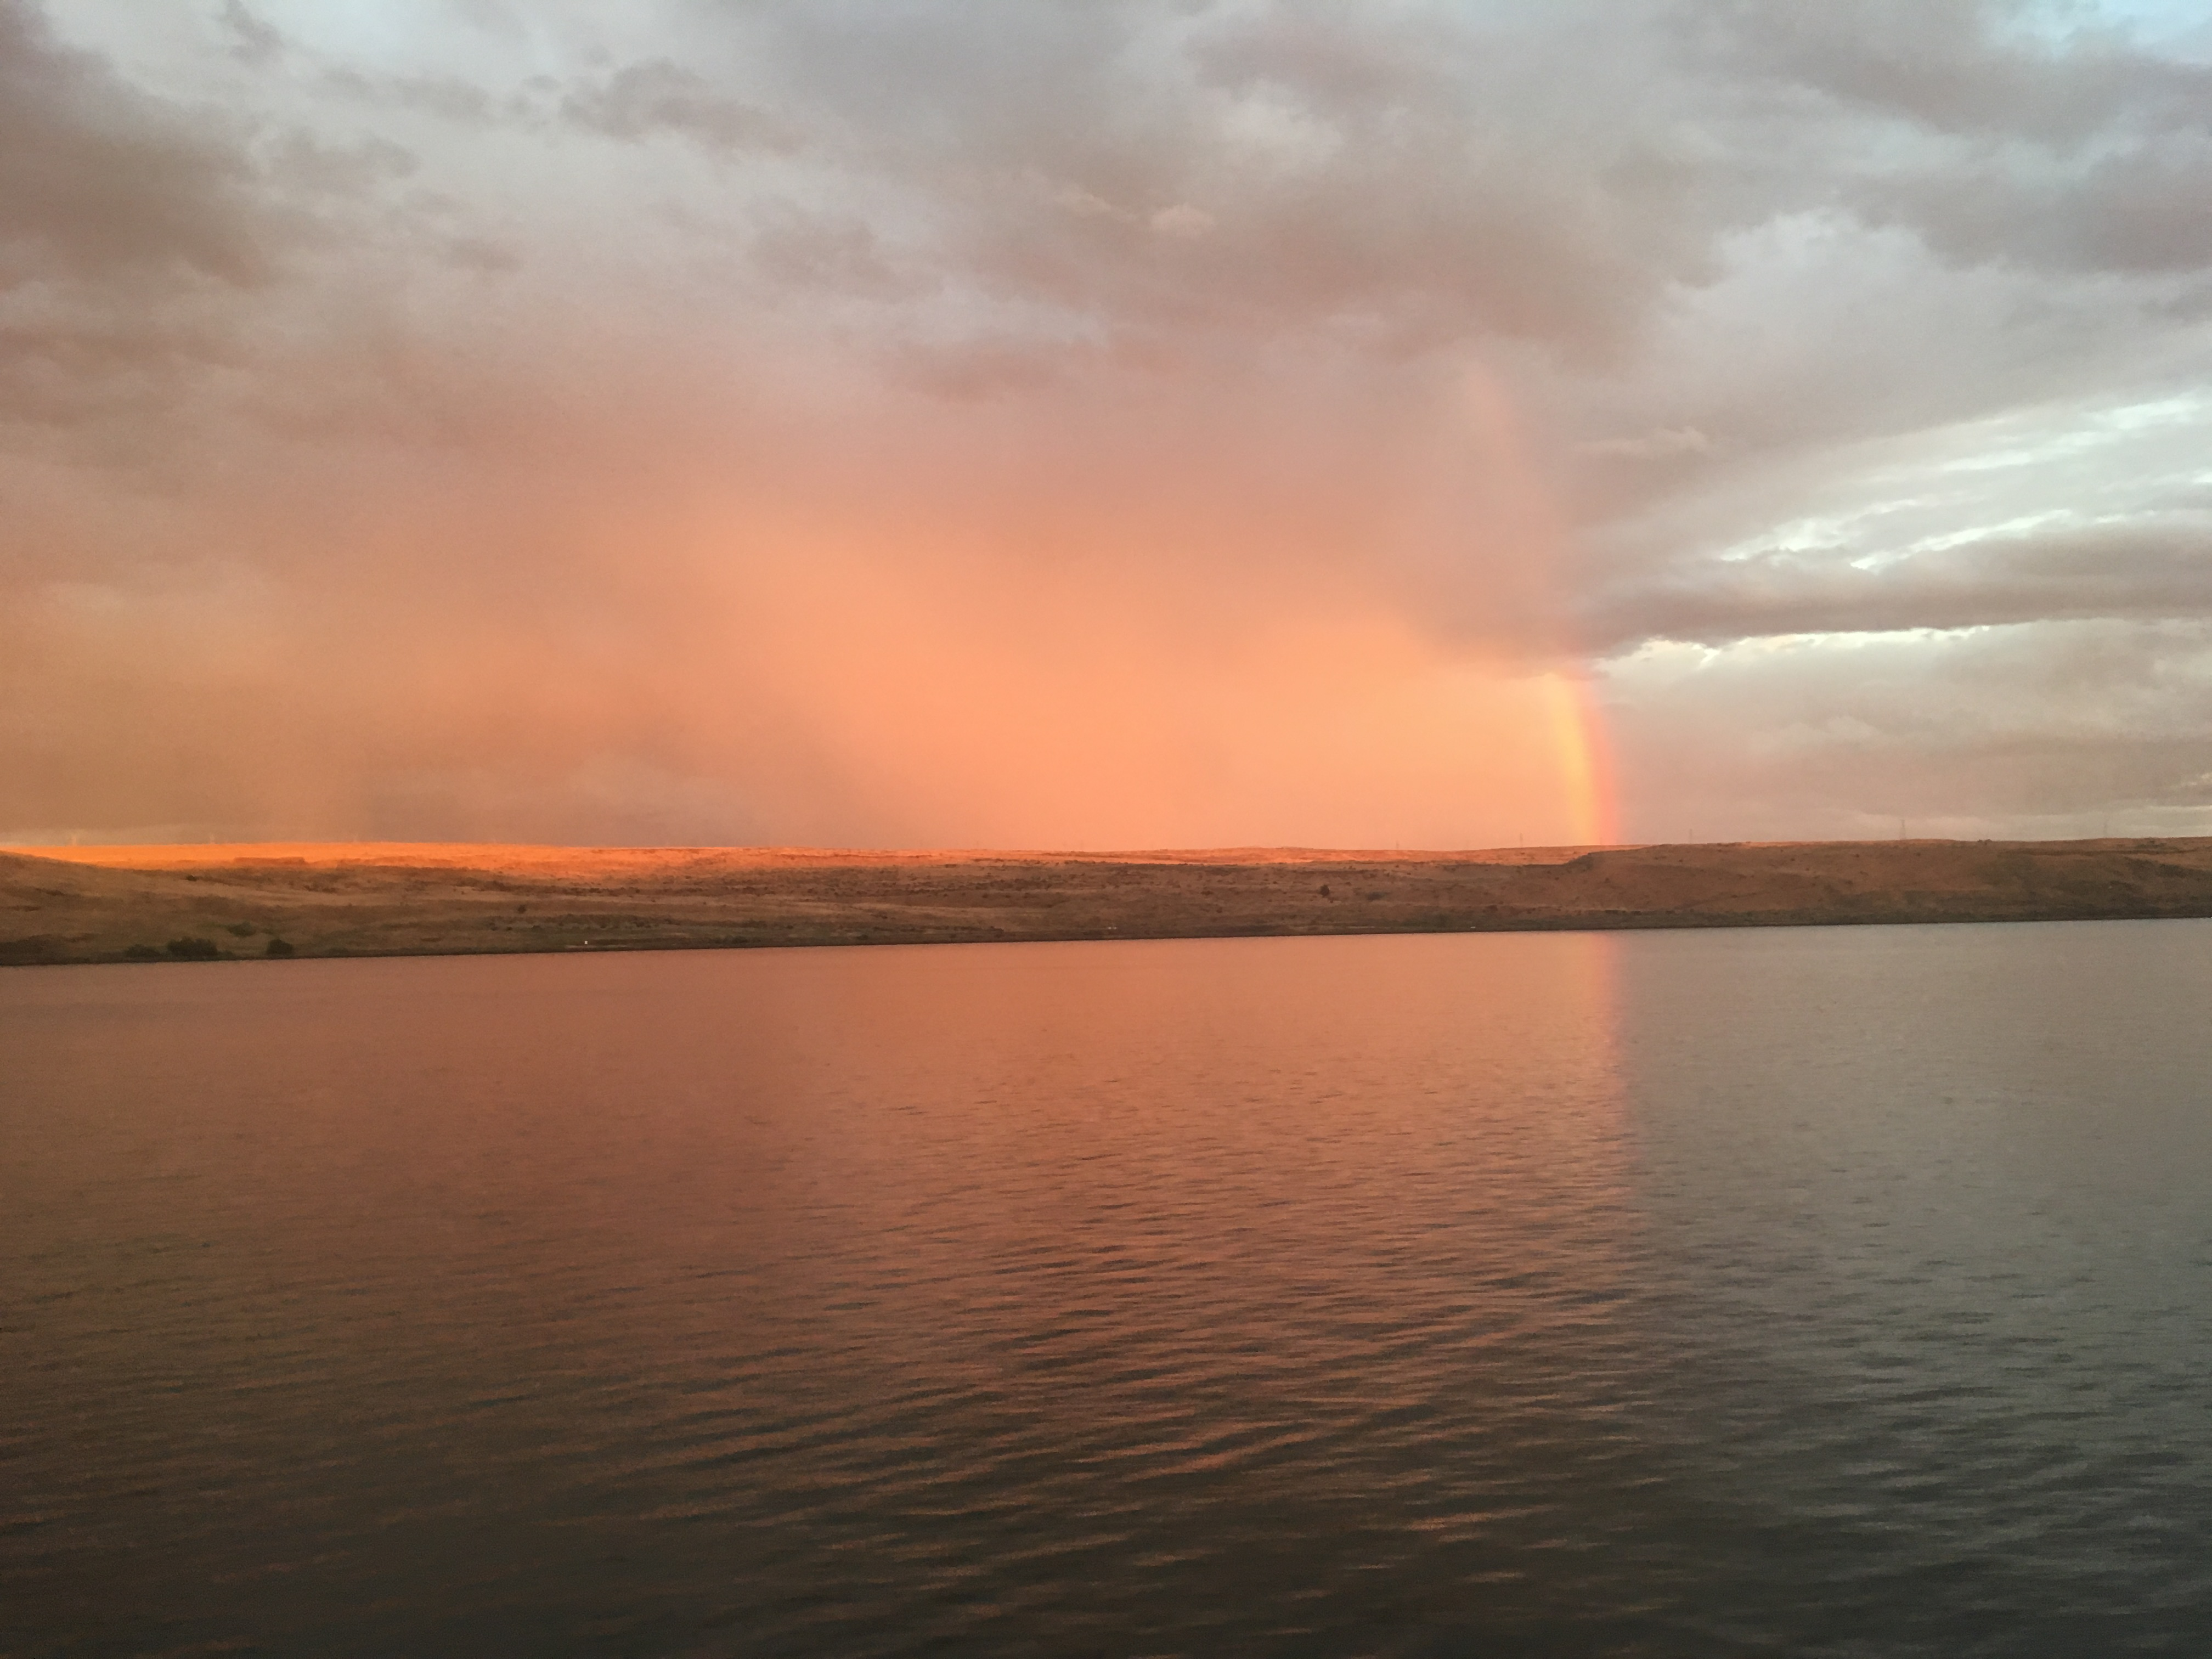 The Columbia River at sunset with rainbow.